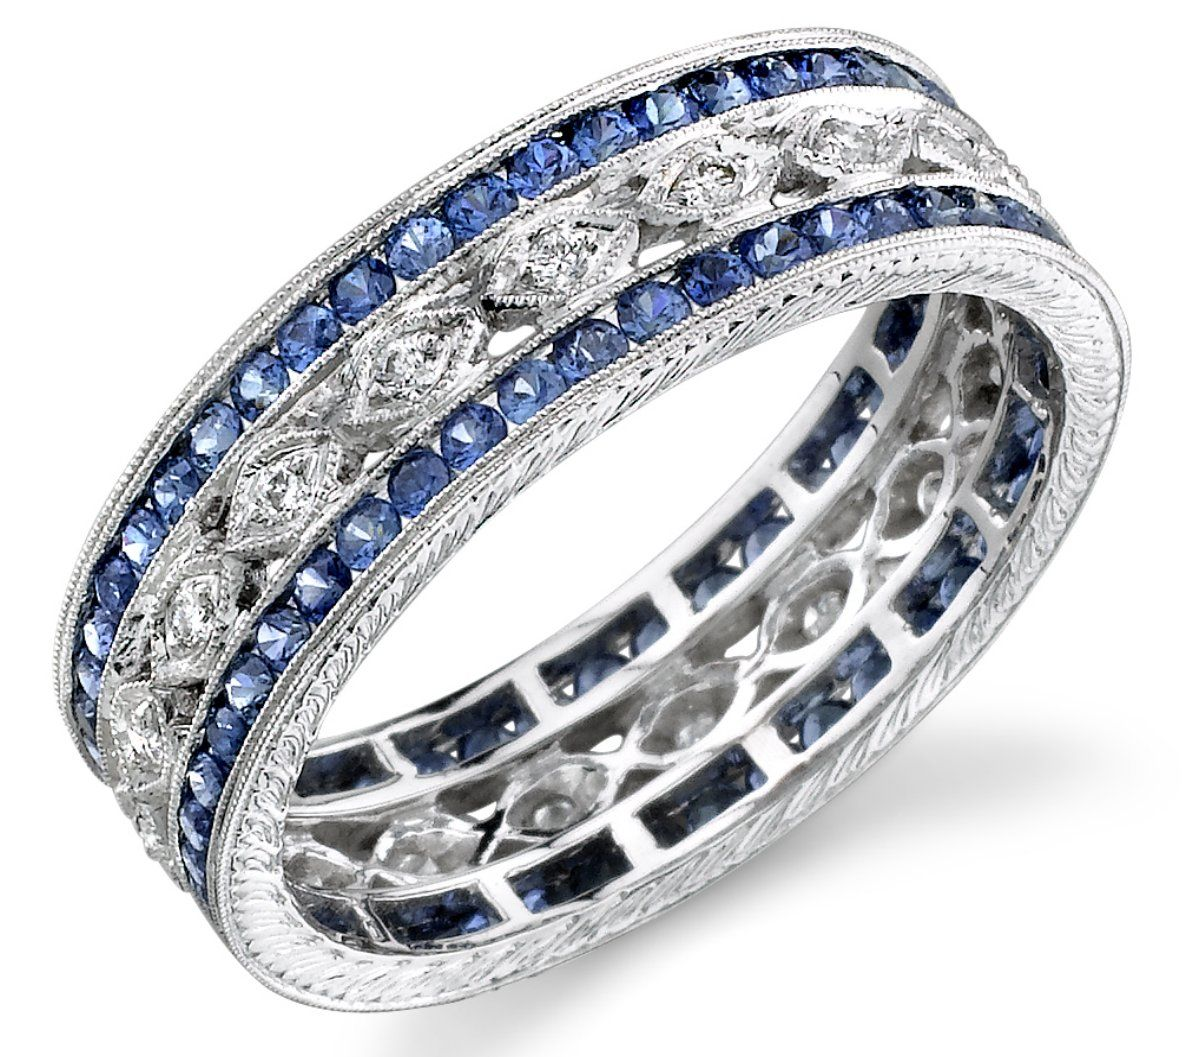 wedding band rings wide diamond sapphire band Love this for a push present because it can be